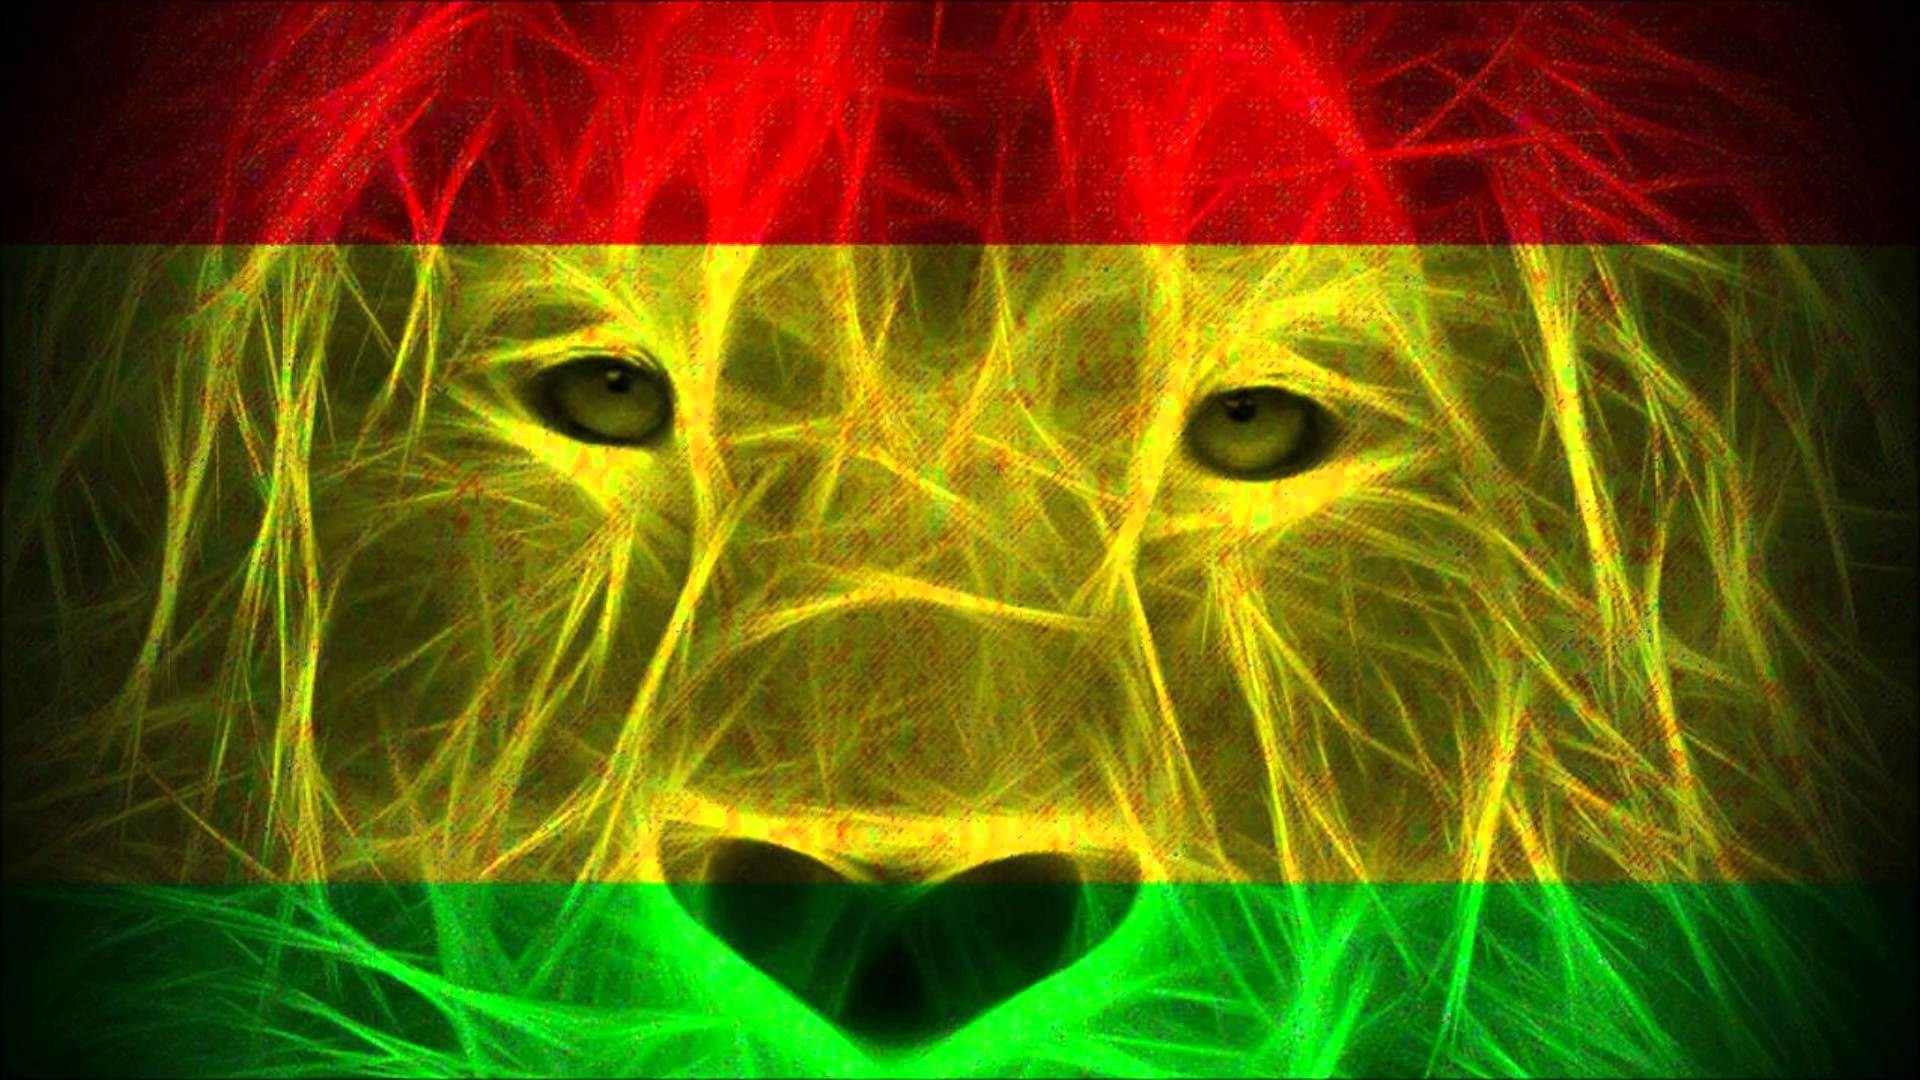 Marijuana Hd Wallpaper Iphone Trippy Rasta Wallpaper 47 Images